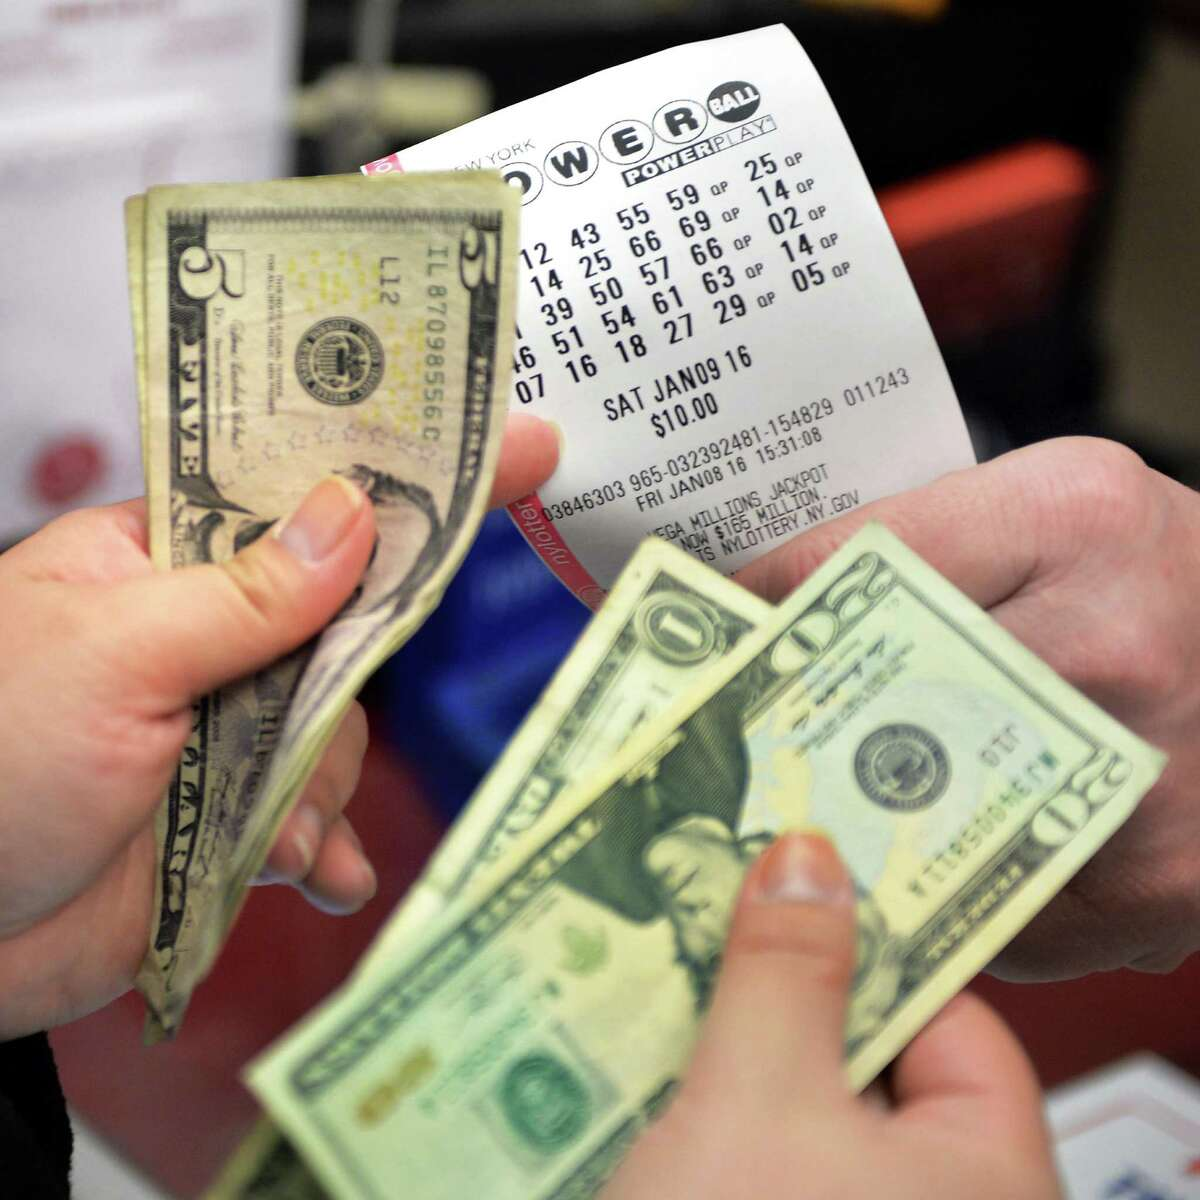 Store manager Jay Letourneau sells Powerball lottery tickets to a customer at the Stewart's store at the corner of Osbourne and Sand Creek Road Friday Jan. 8, 2016 in Colonie, NY. (John Carl D'Annibale / Times Union)